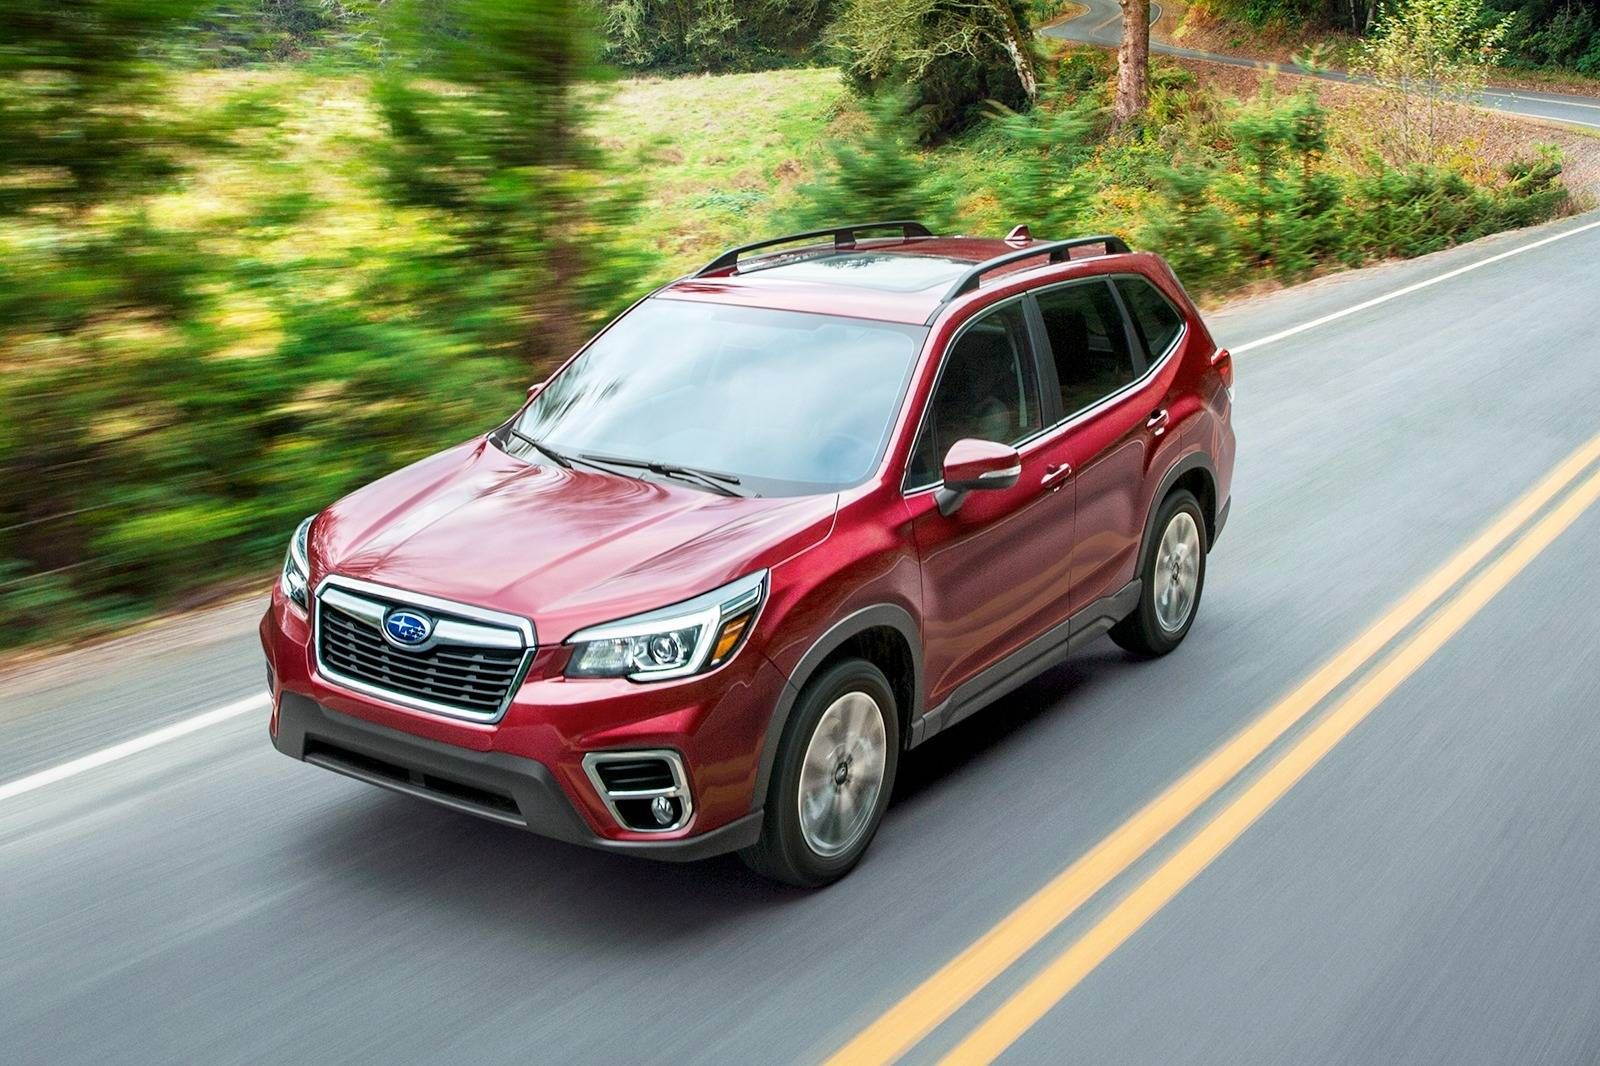 2019 Subaru Forester Pricing Features Ratings And Reviews Edmunds Subaru Forester Subaru Subaru Outback For Sale